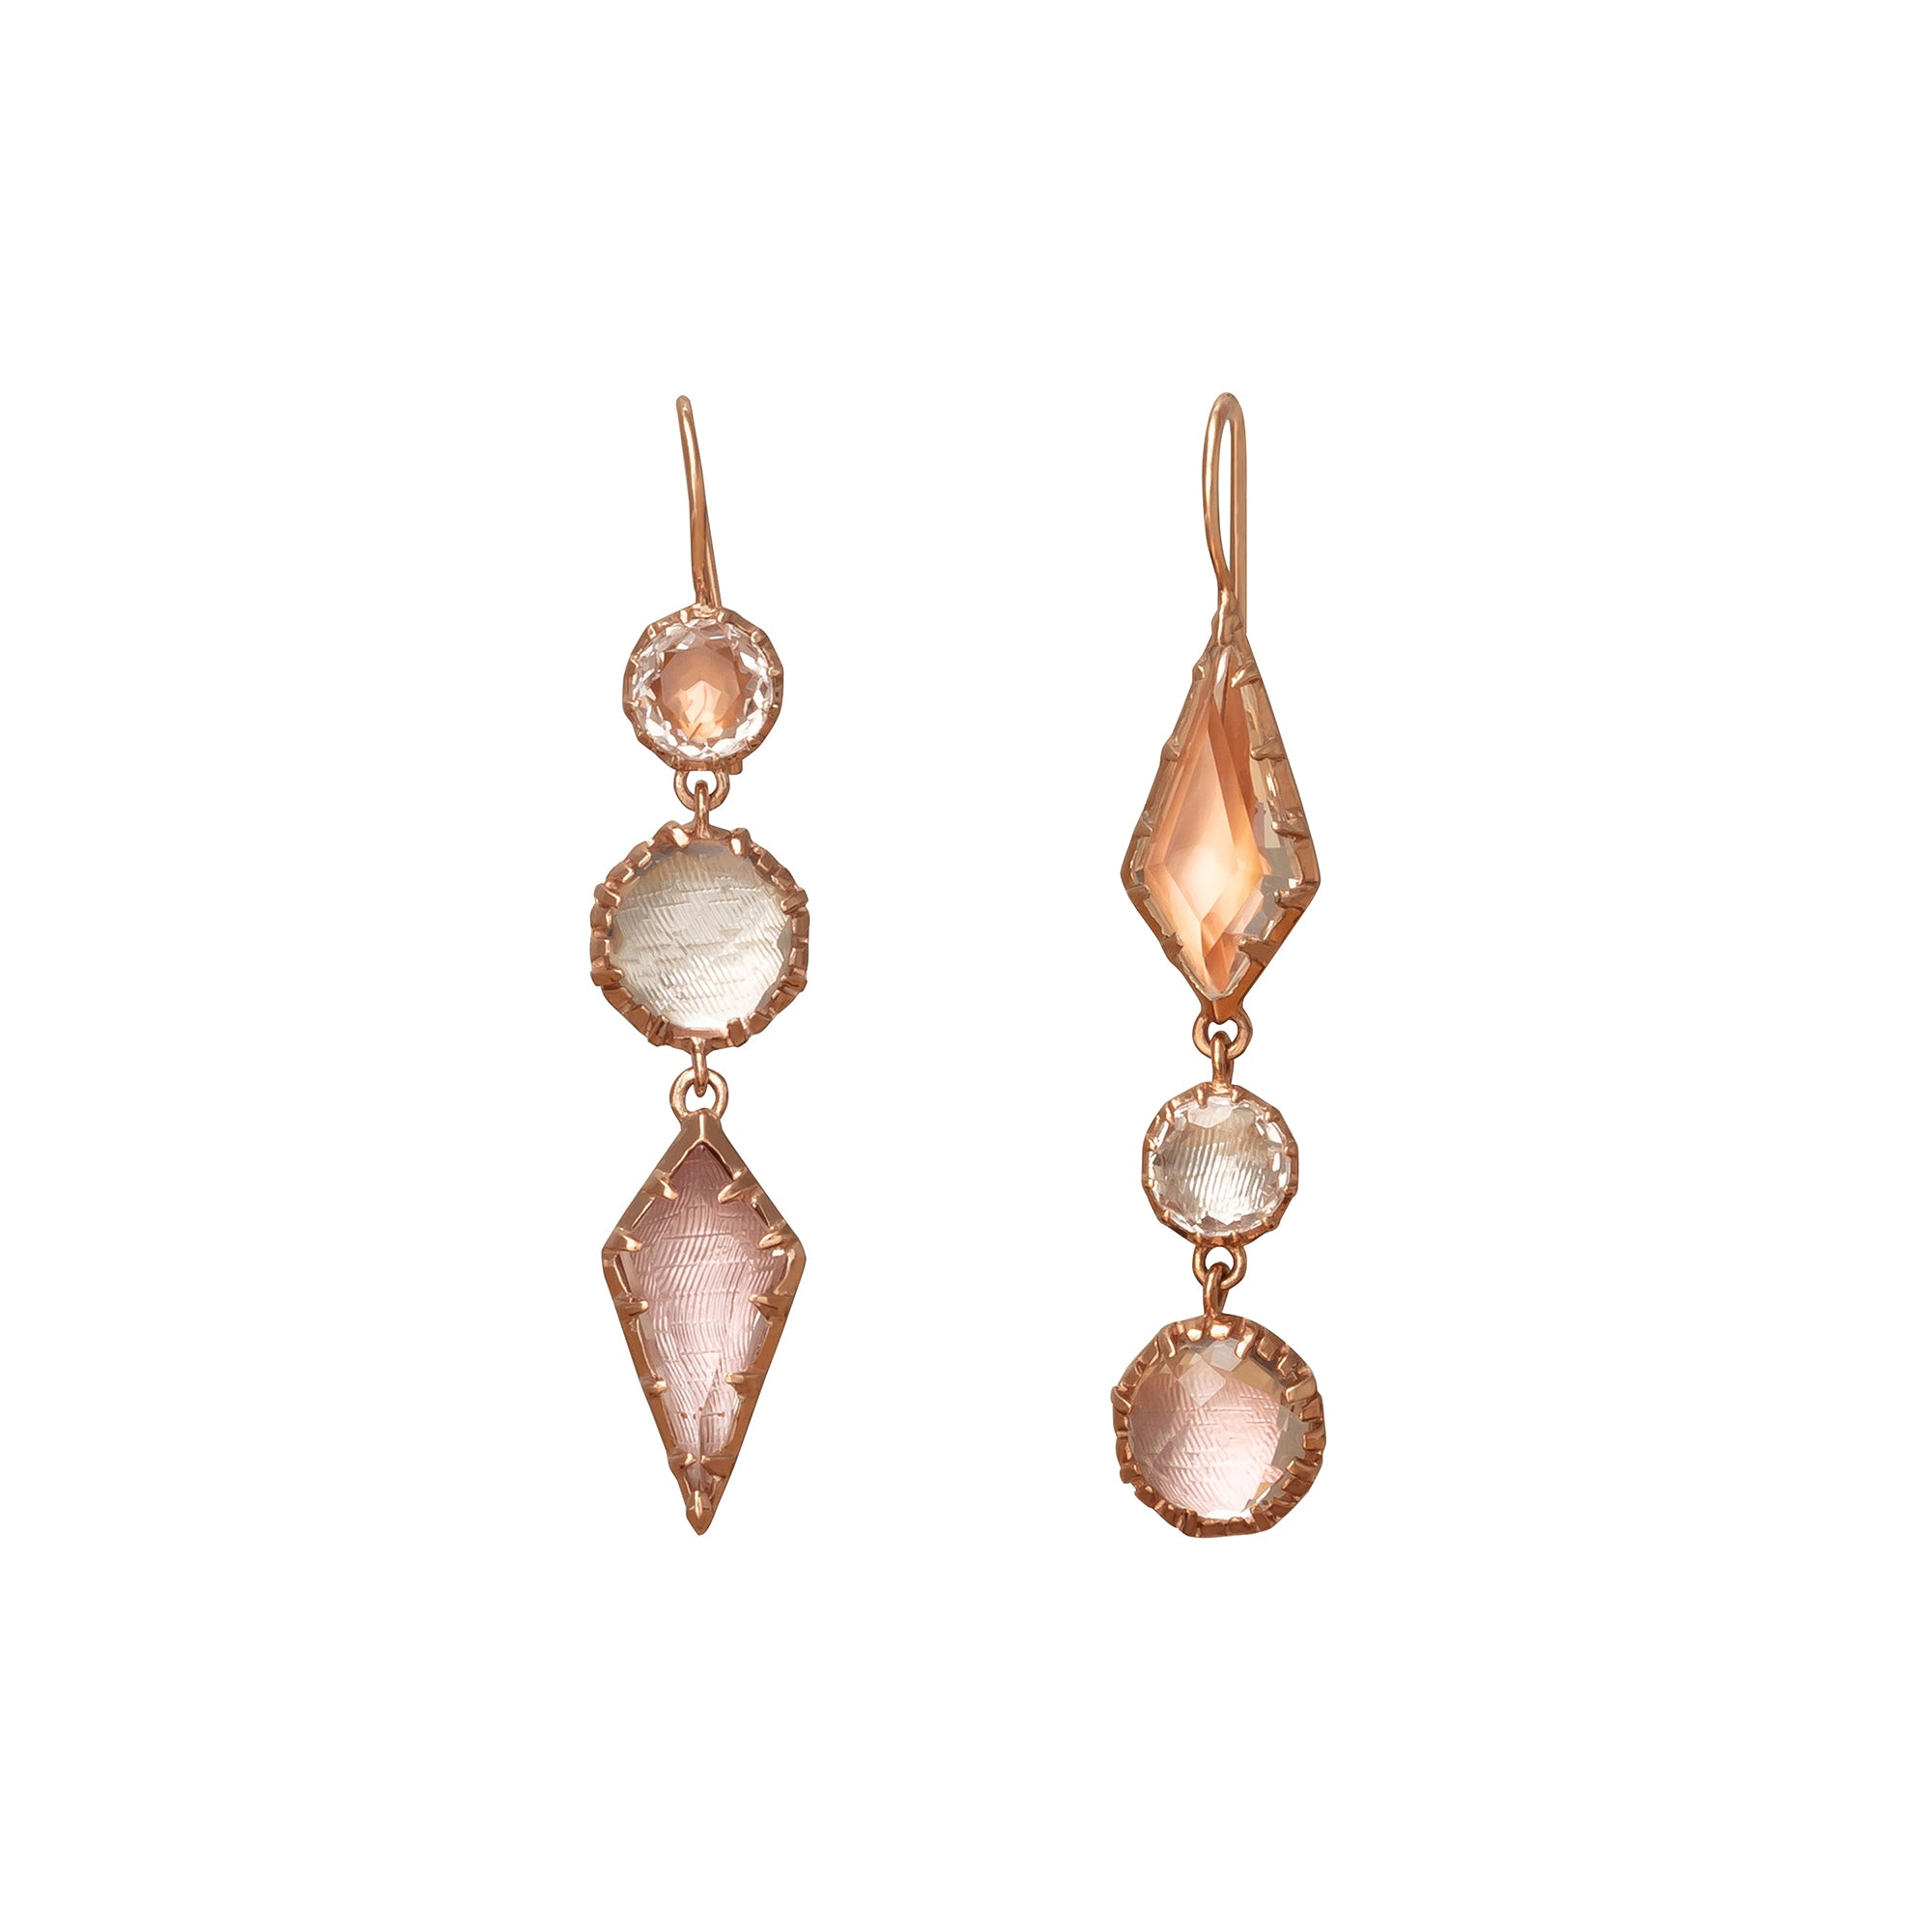 Sadie Mis-Matched Bubble Three Drop Earrings - Larkspur & Hawk - Earrings | Broken English Jewelry